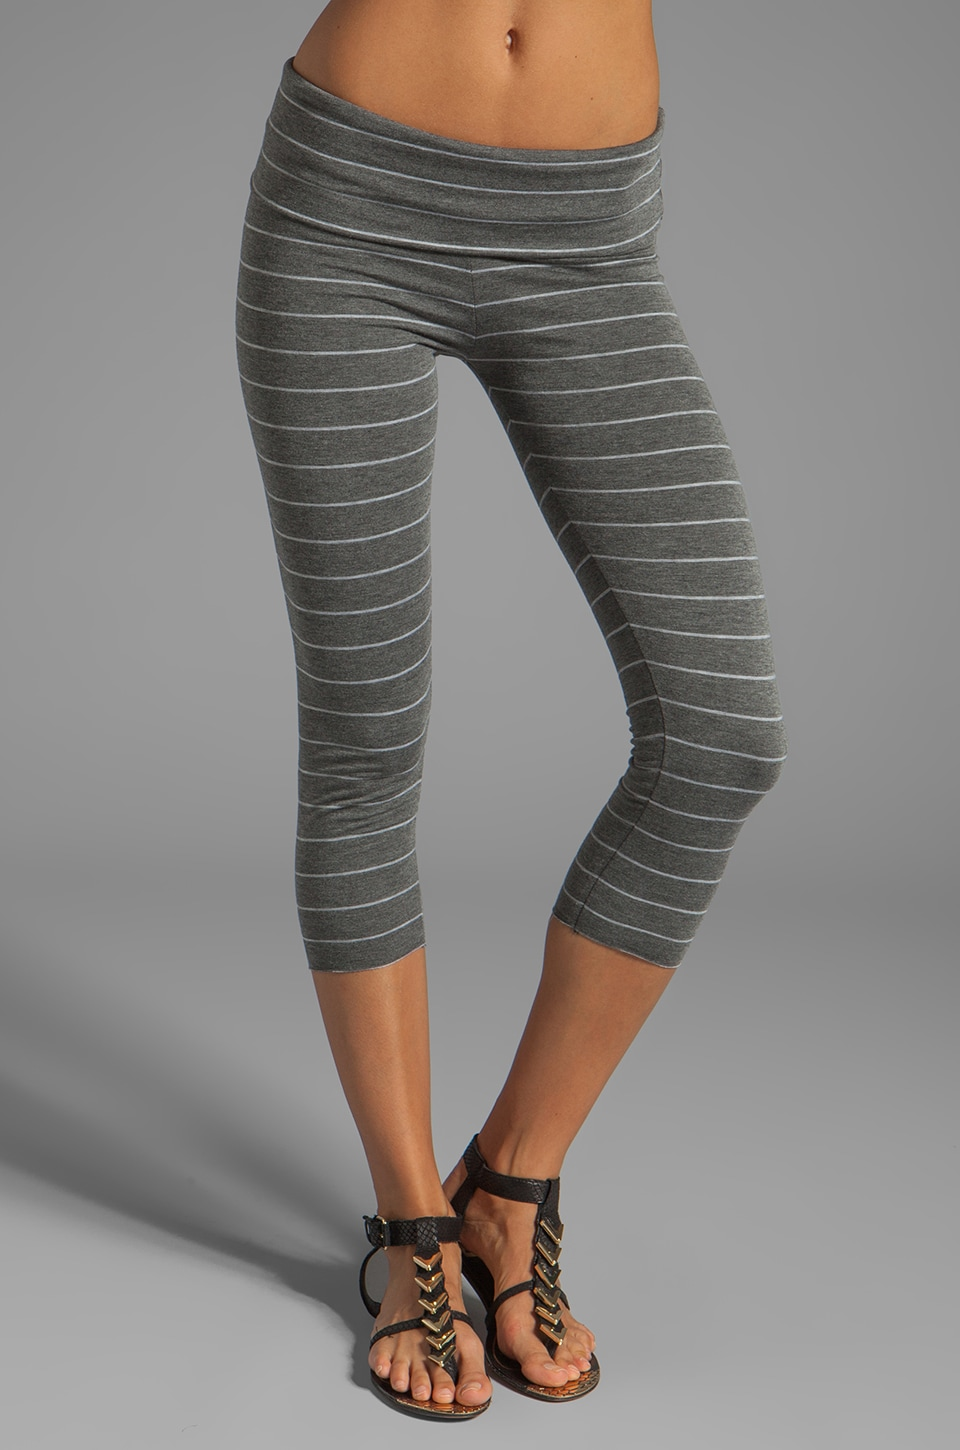 Saint Grace Foldover Crop Legging in Charcoal/Grey